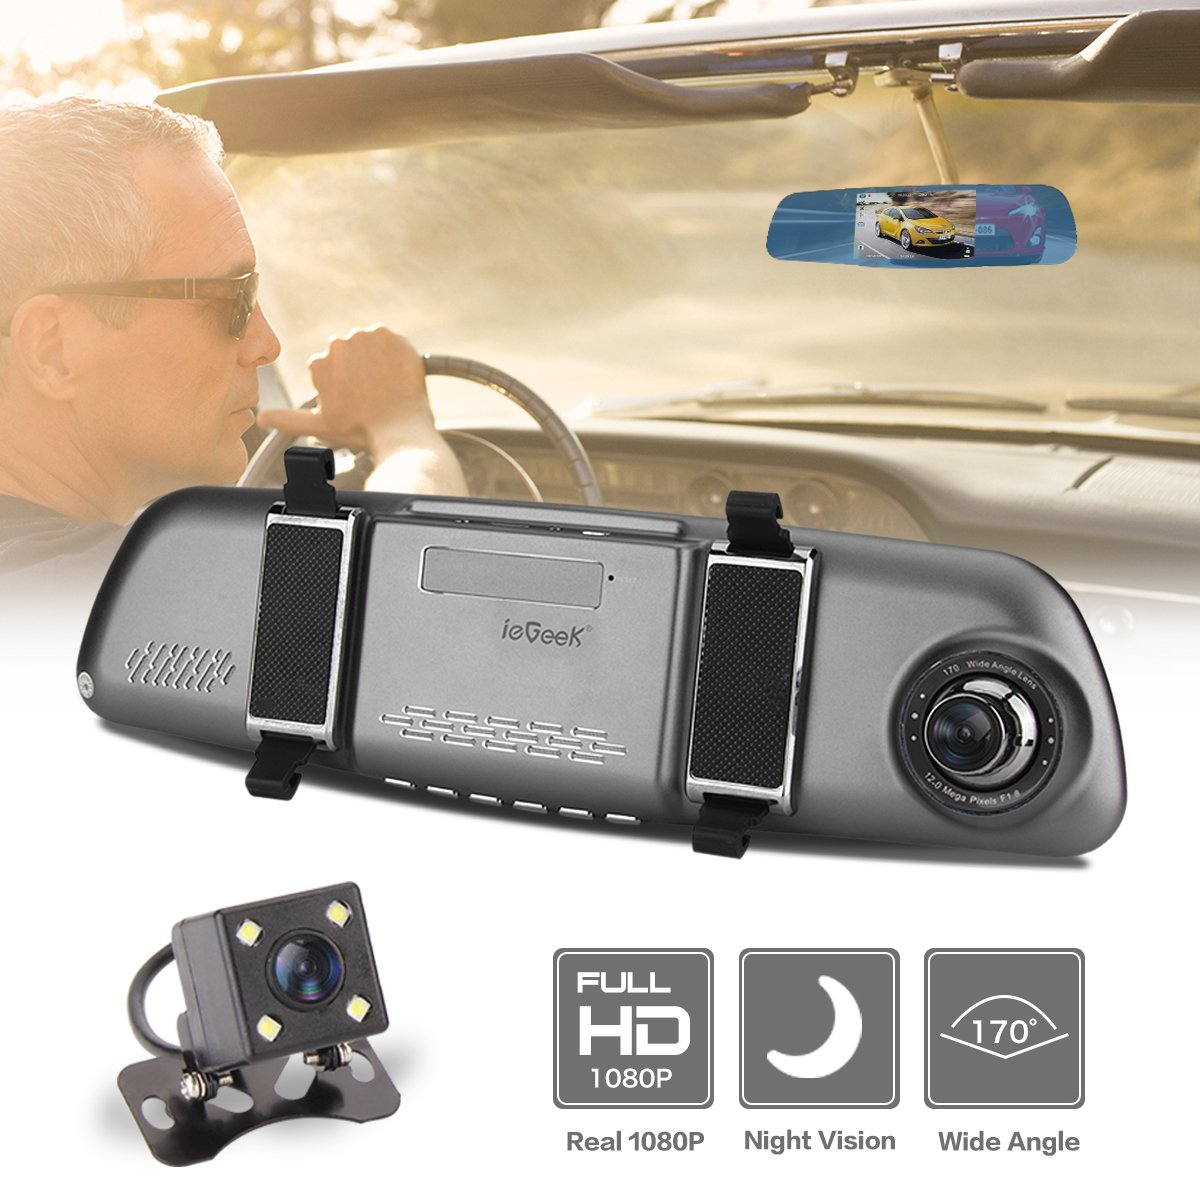 "ieGeek Car Camera FHD 1080P Night Vision 170°Wide Angle Dual Lens 5"" TFT Screen DVR with HDR Loop Recording G-Sensor Motion Detection Parking Assistance"